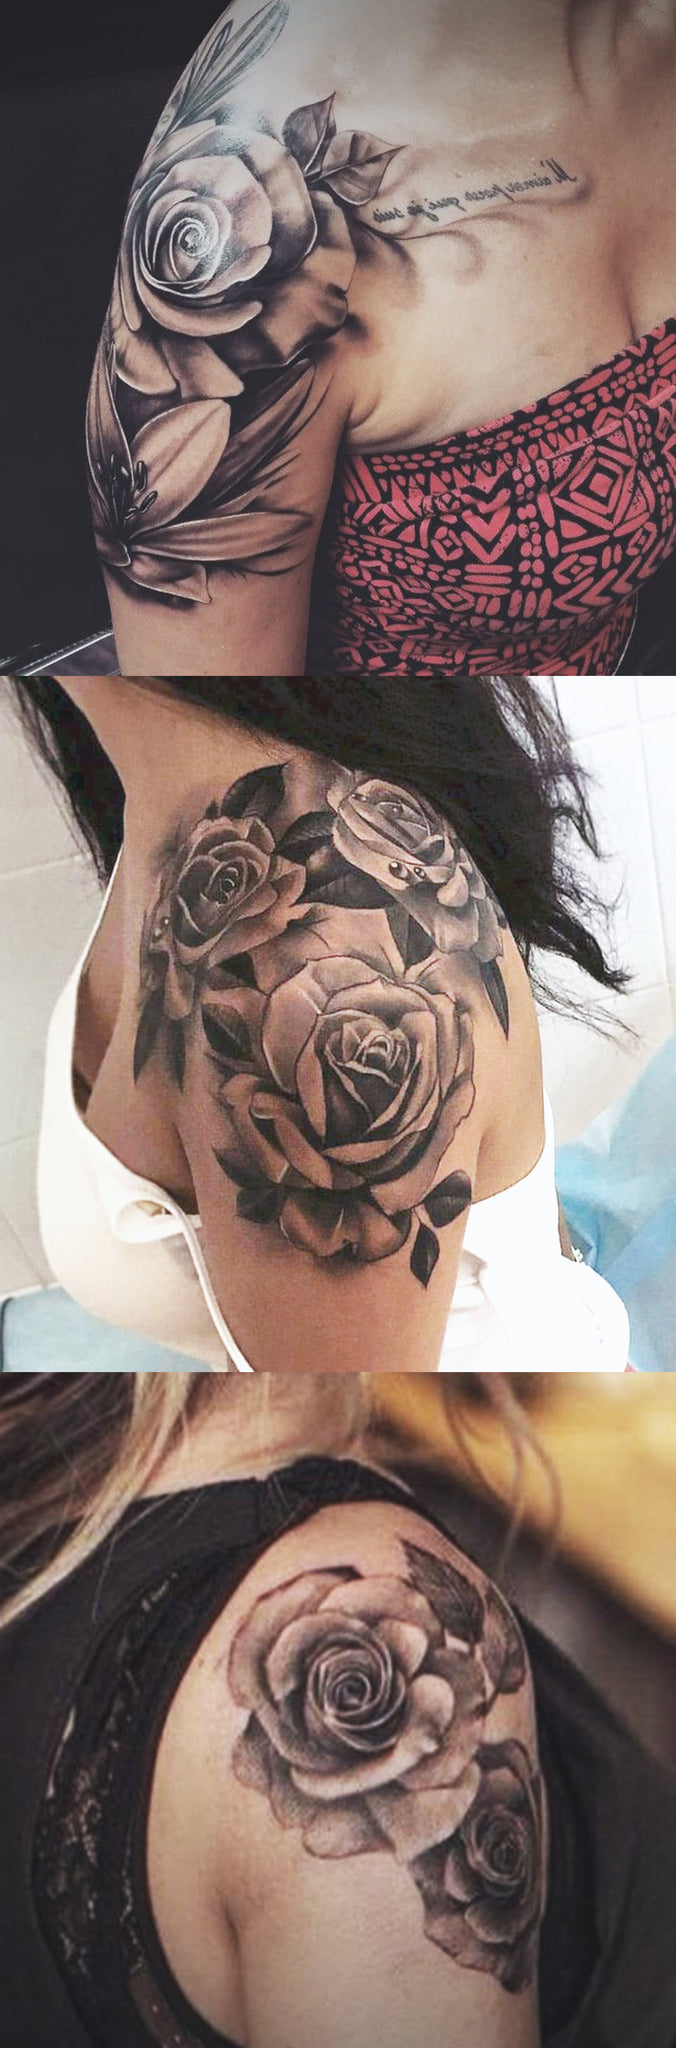 f212c3e3c Women's Rose Shoulder Tattoo Ideas in Black and White Realistic Left Floral  Arm Sleeve Tatouage Ideas